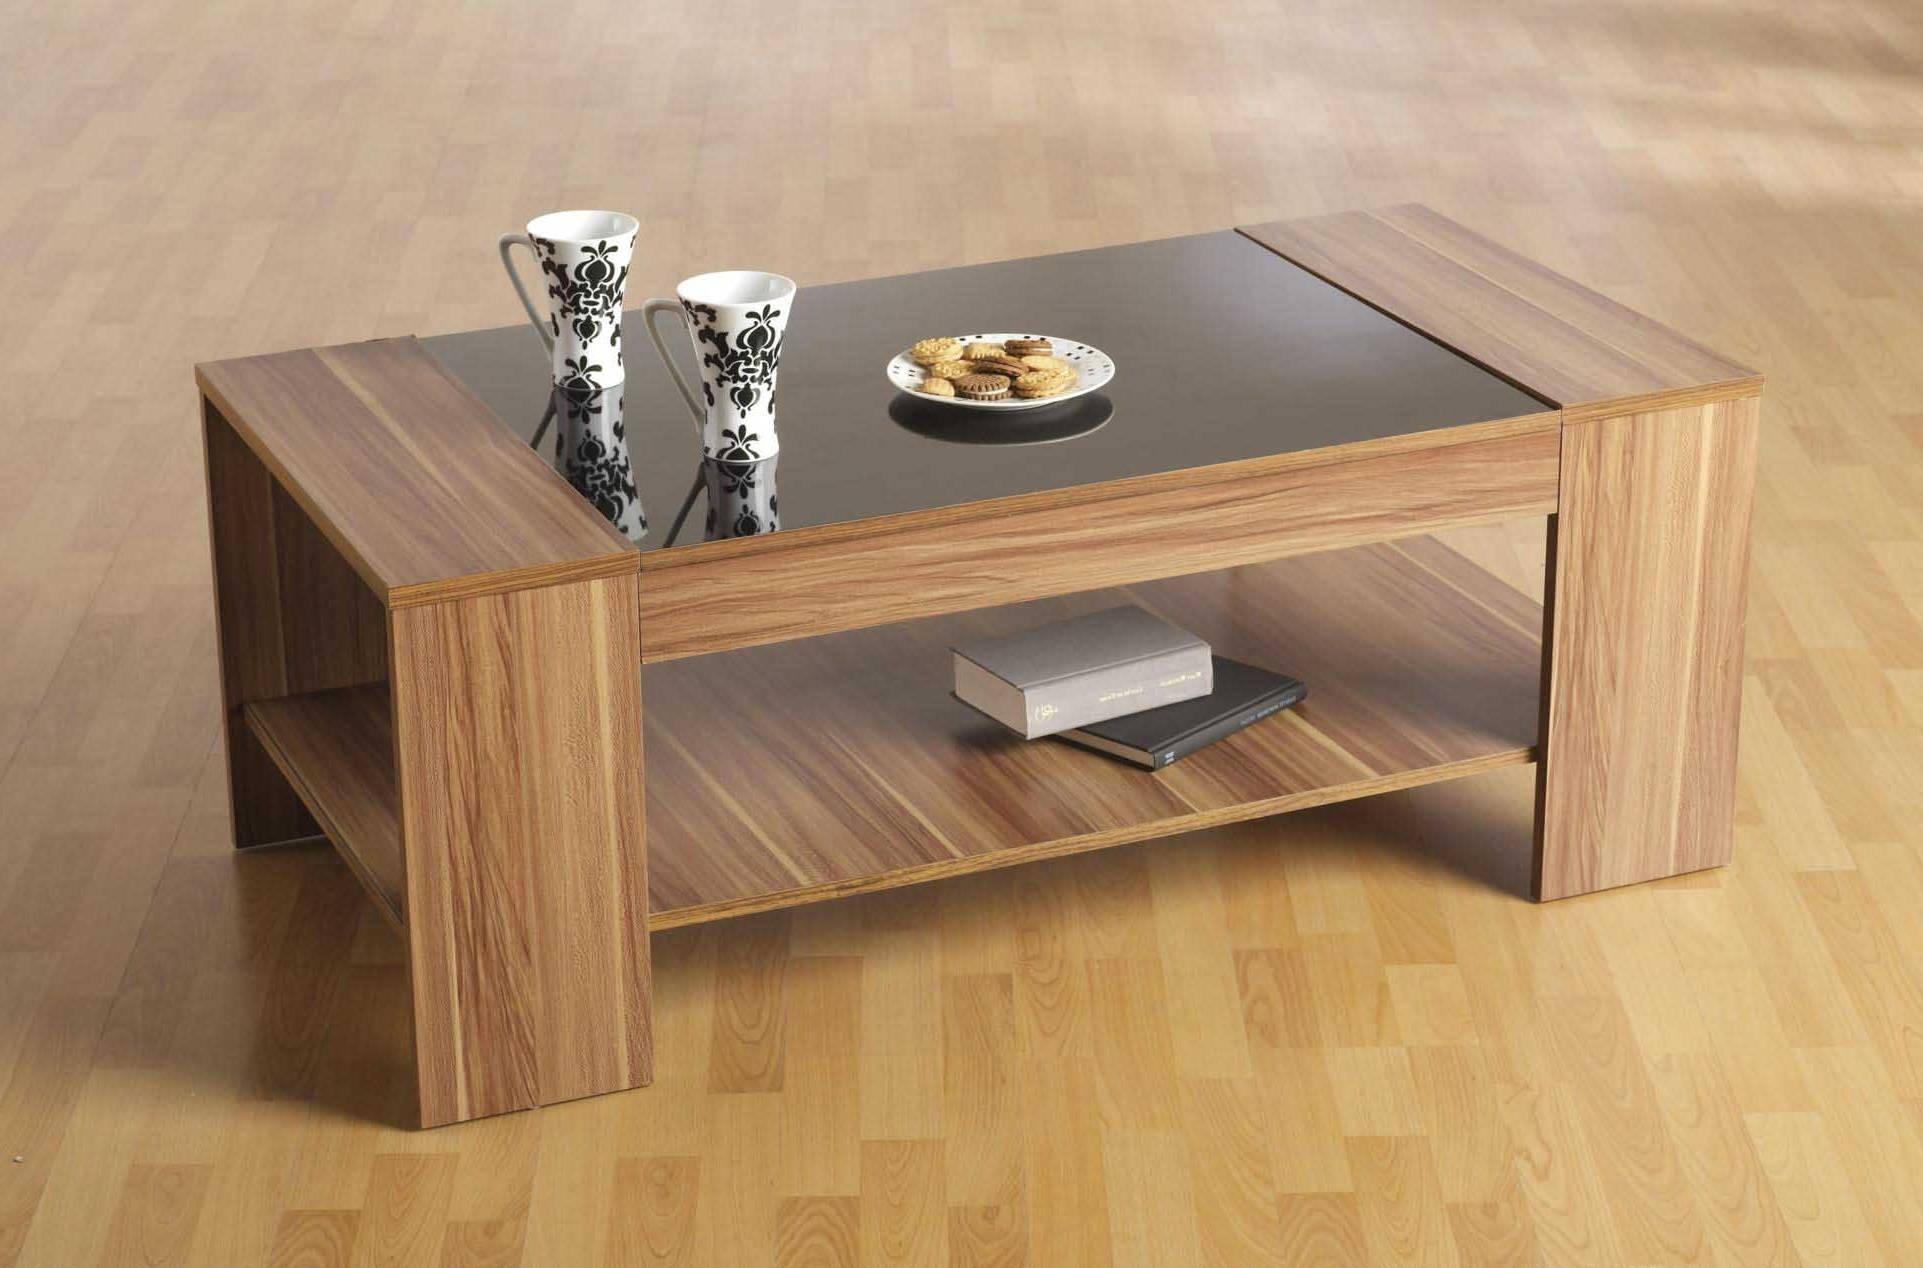 Enchanting Glass And Wood Coffee Table Modern – Octagon Coffee for Wooden And Glass Coffee Tables (Image 13 of 30)